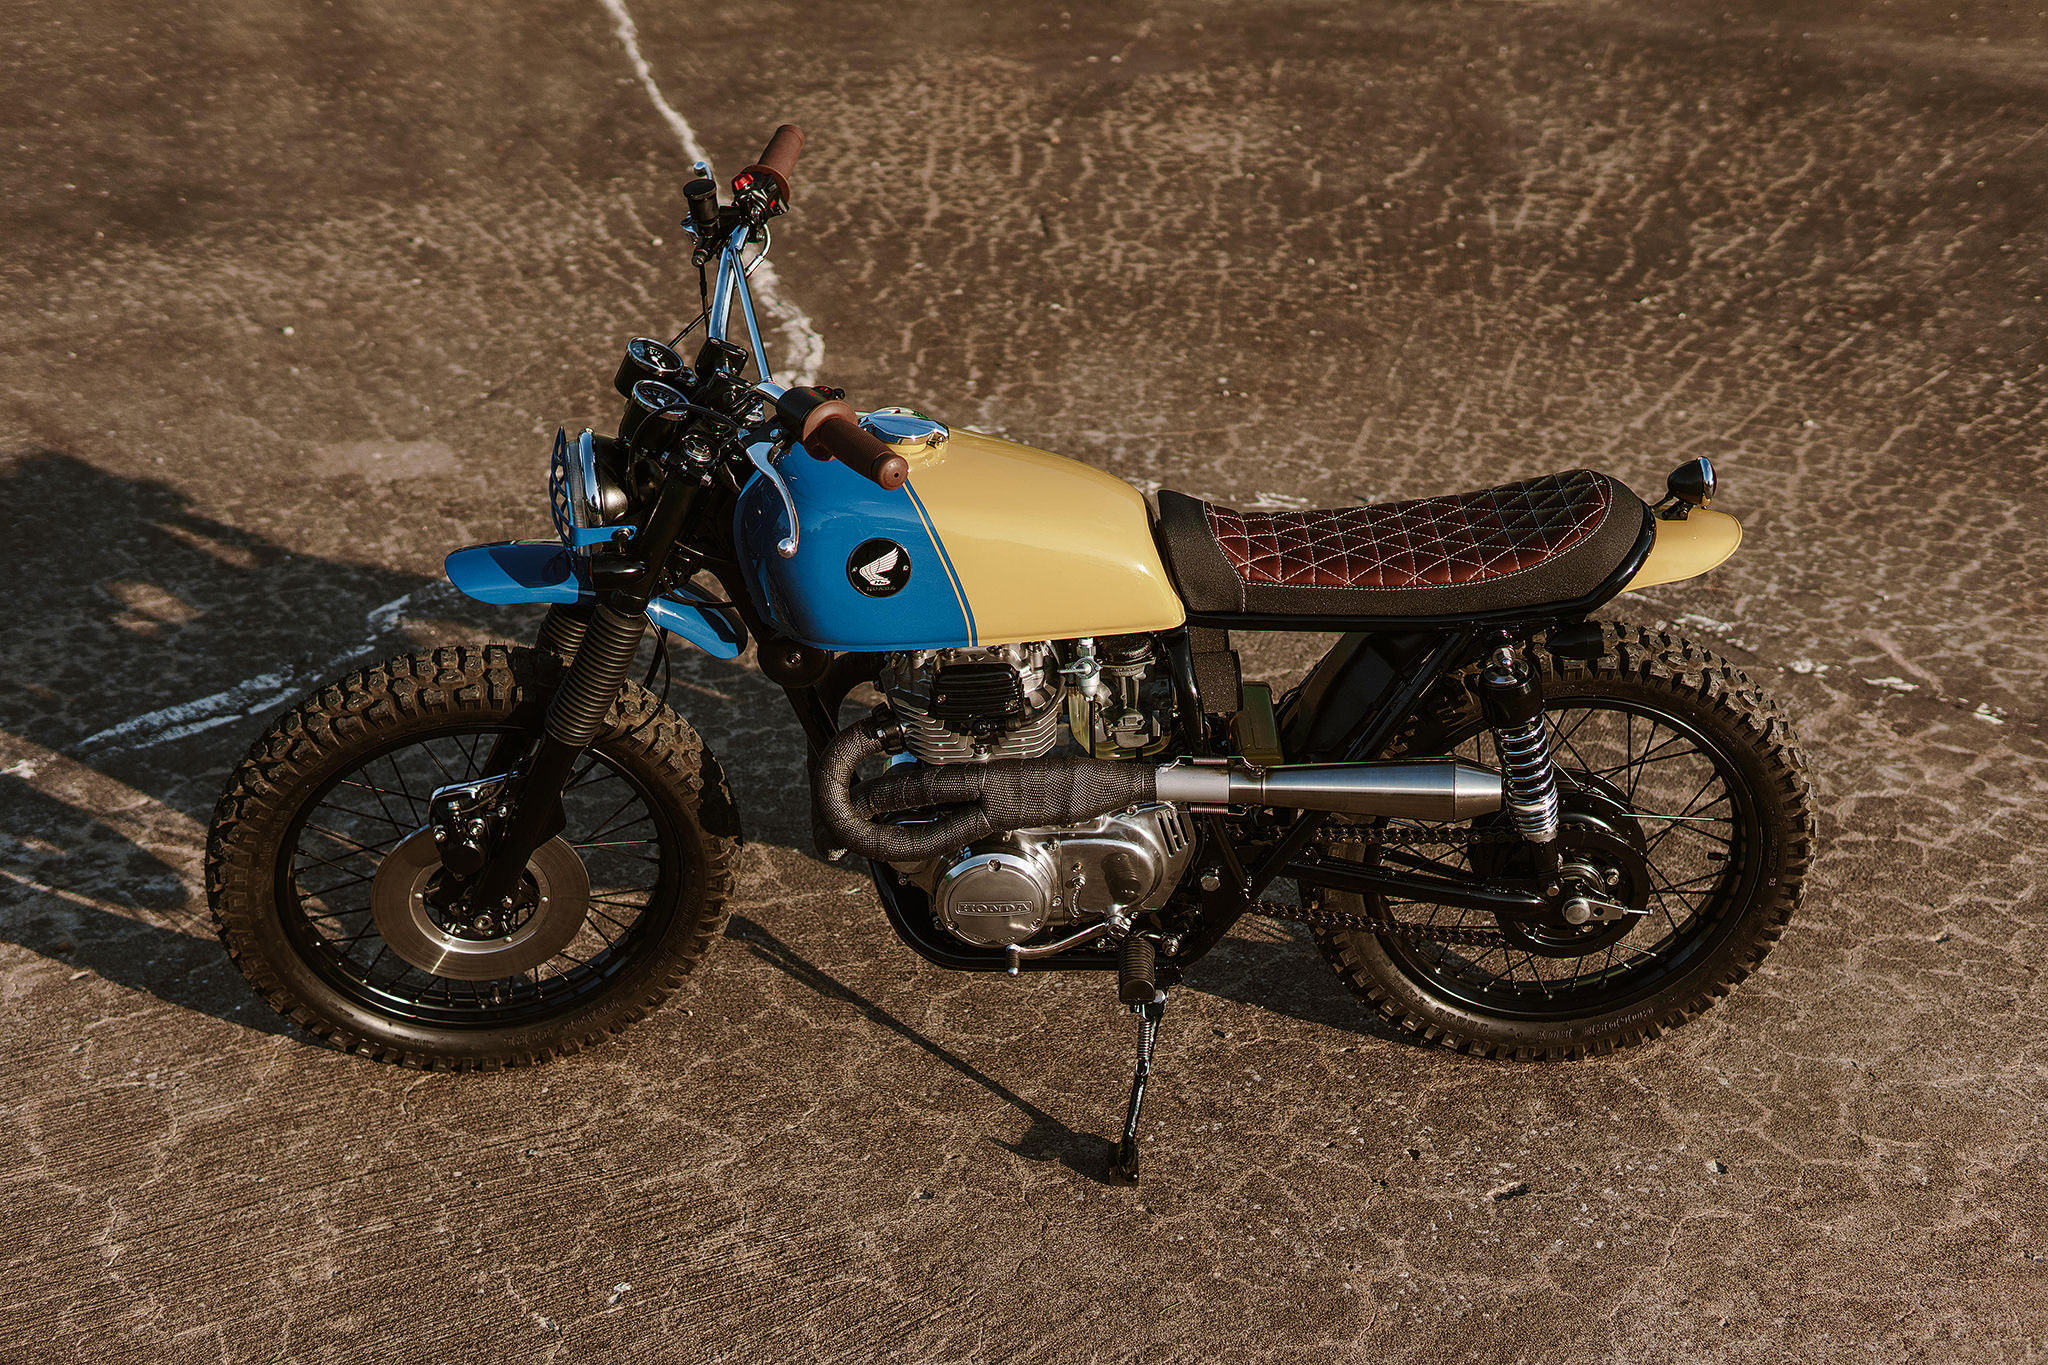 BJ Scrambler, Outdoor - 13.jpg